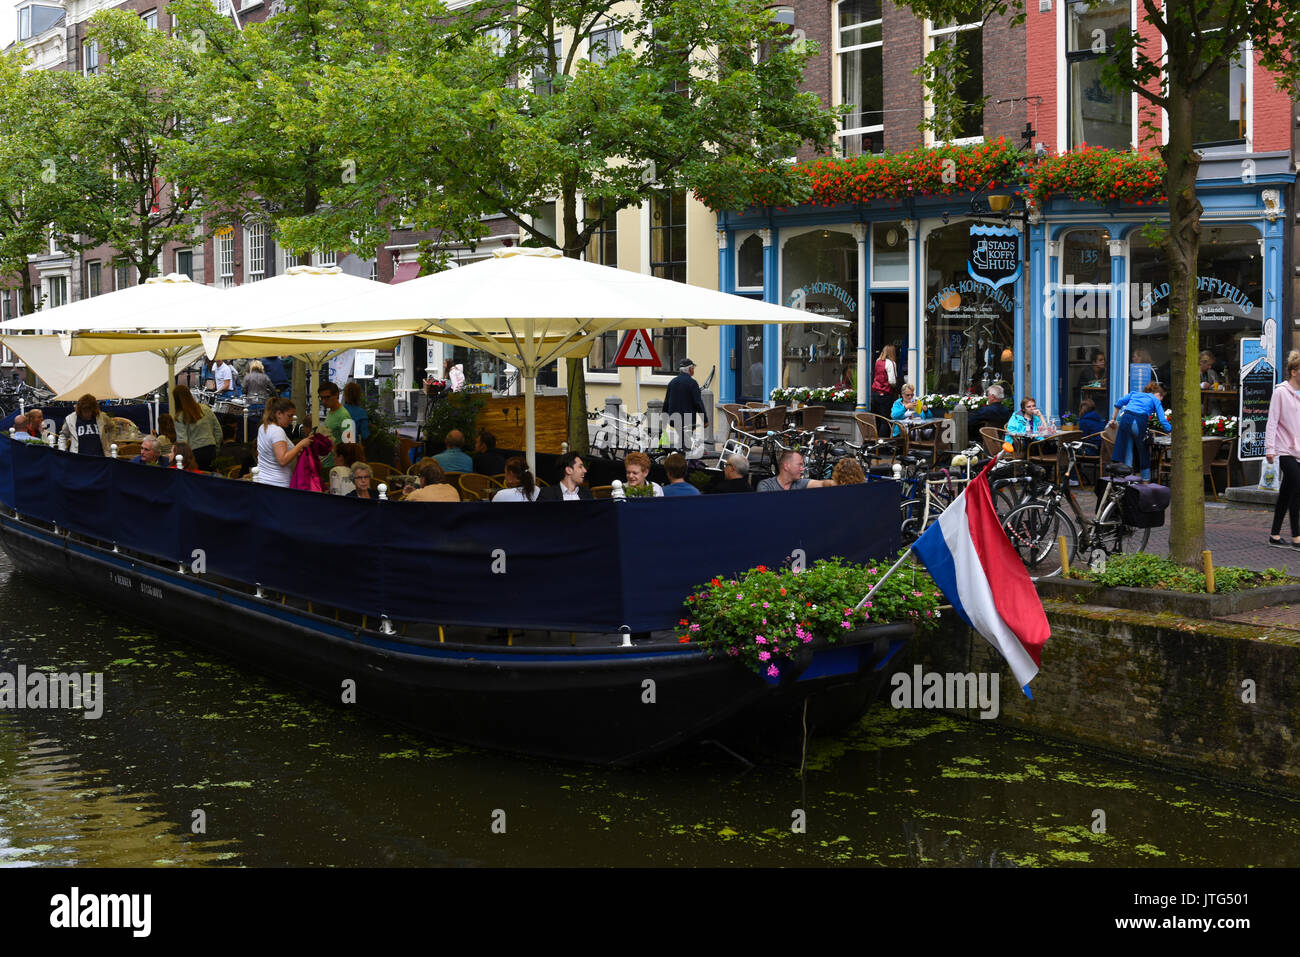 People eating on a Canal Barge Restaurant in Delft, South Holland, The Netherlands - Stock Image